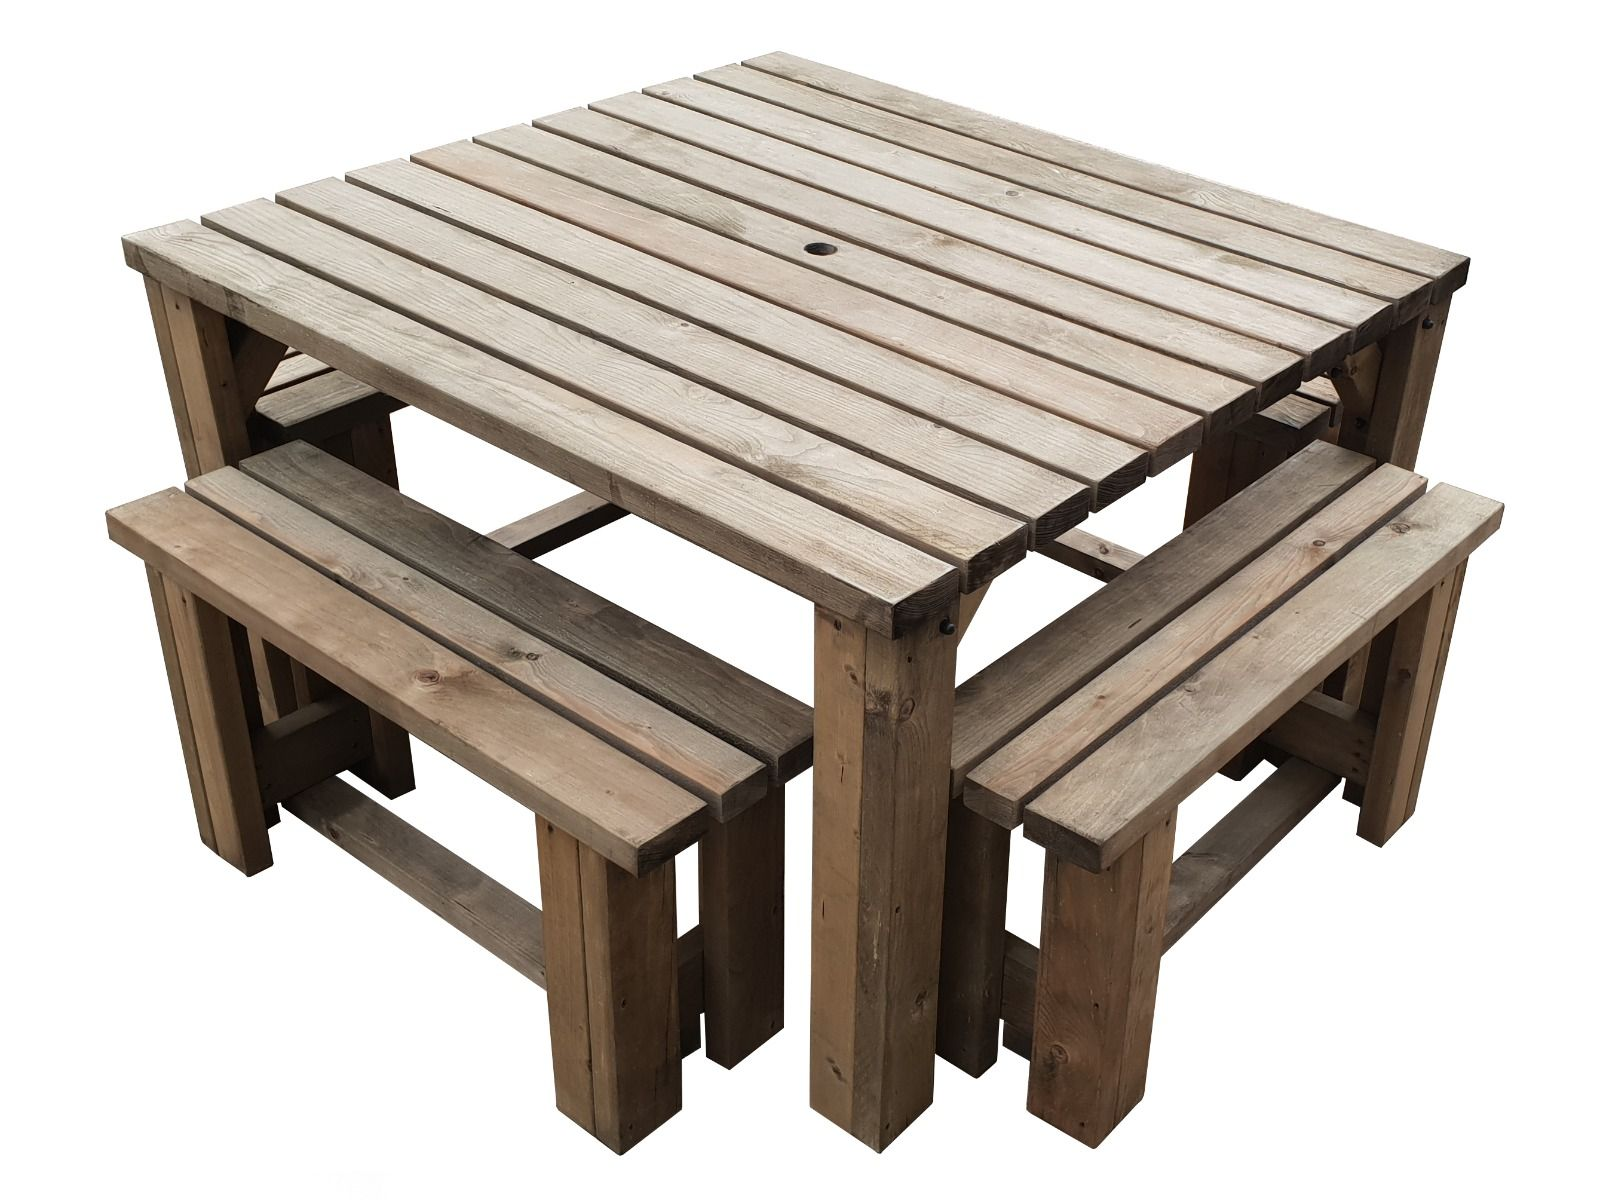 Picnic Table And 4 Bench Set Wooden Outdoor Garden Furniture Quadrum Ebay